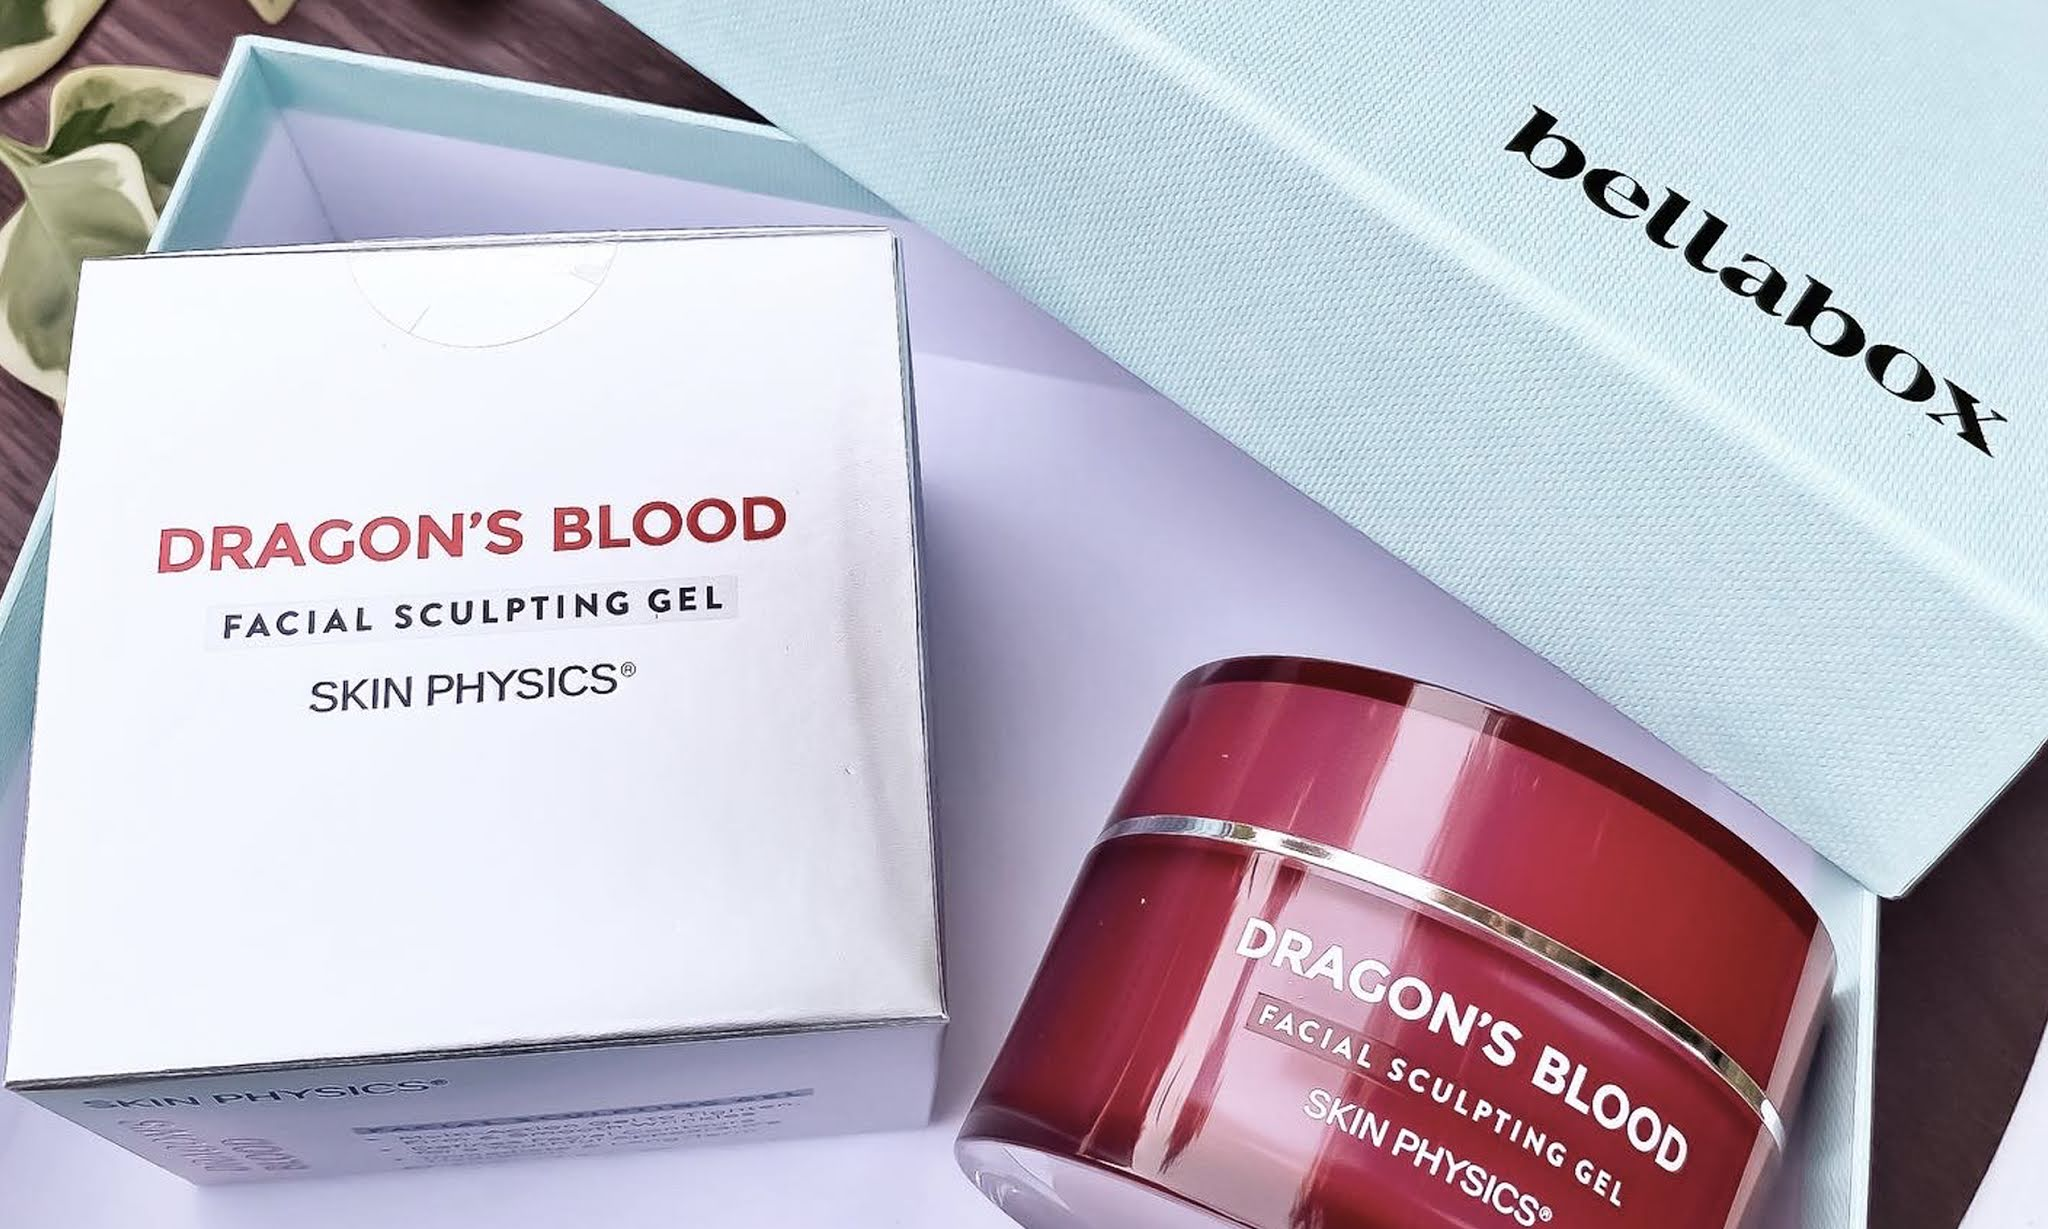 November 2020 Bellabox Australia Skin Physics Facial Sculpting Gel